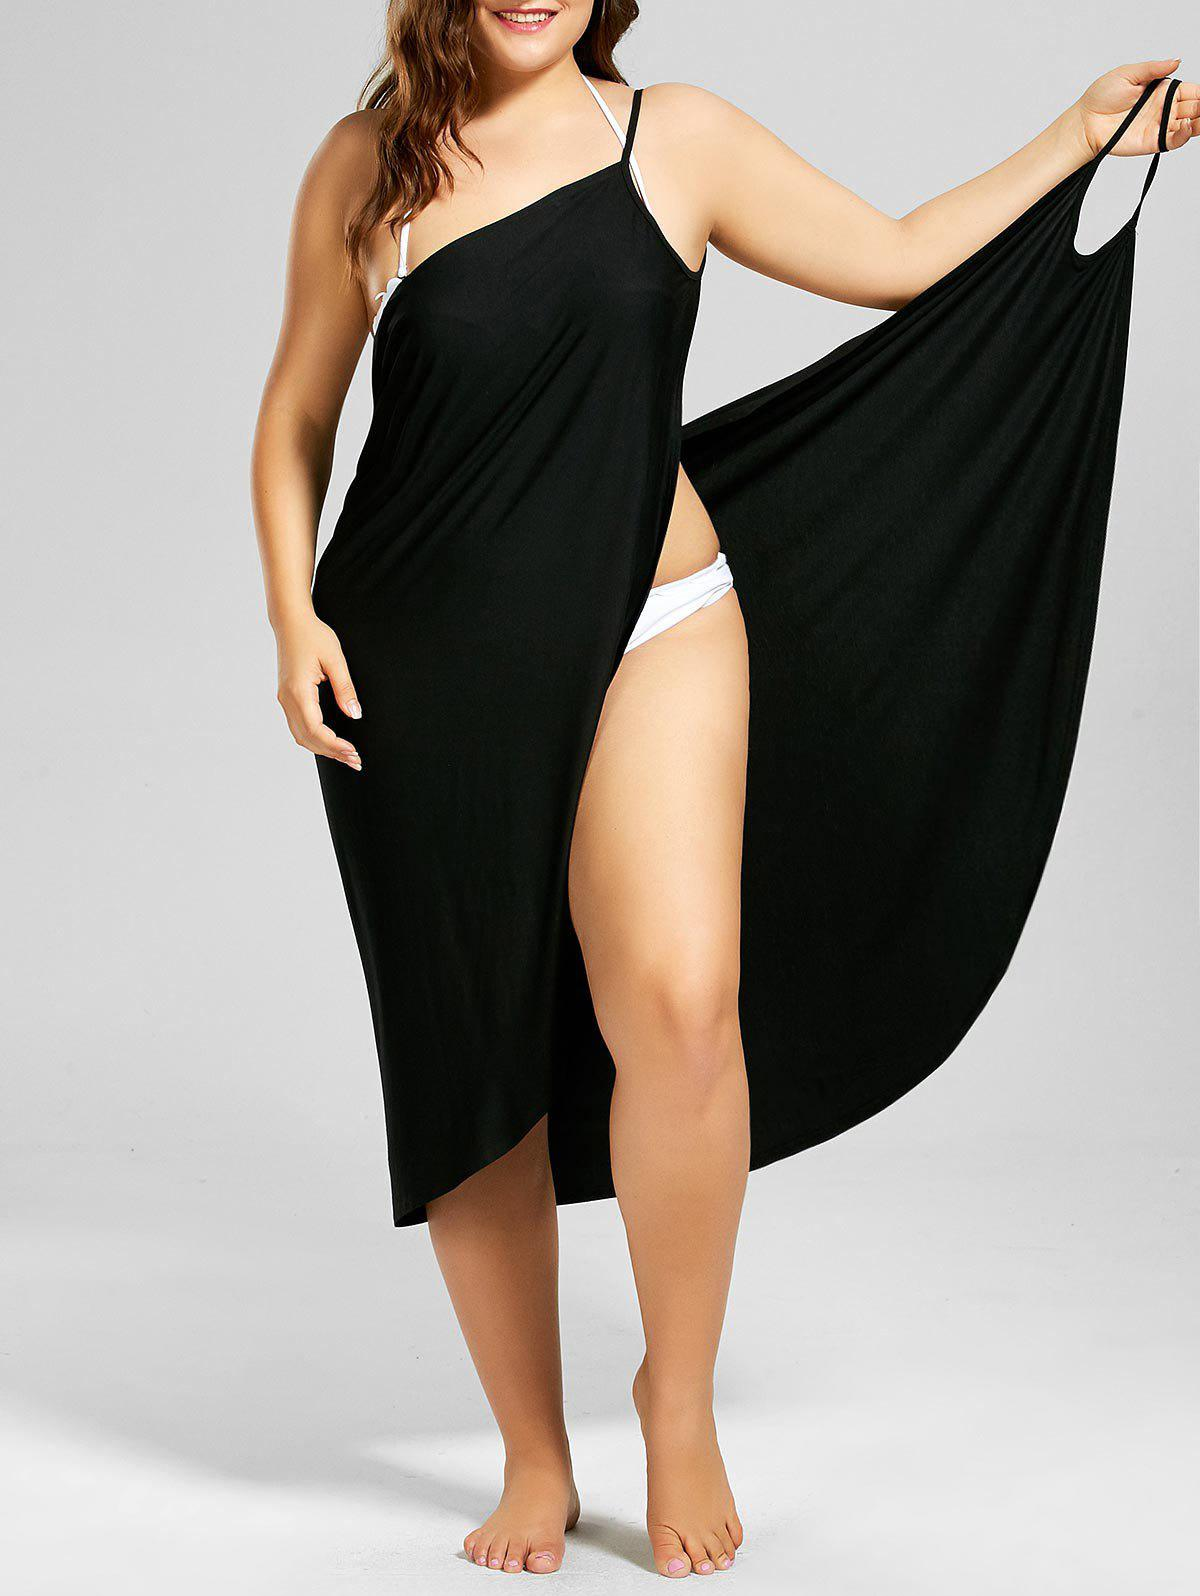 Hot Beach Cover-up Plus Size Wrap Dress